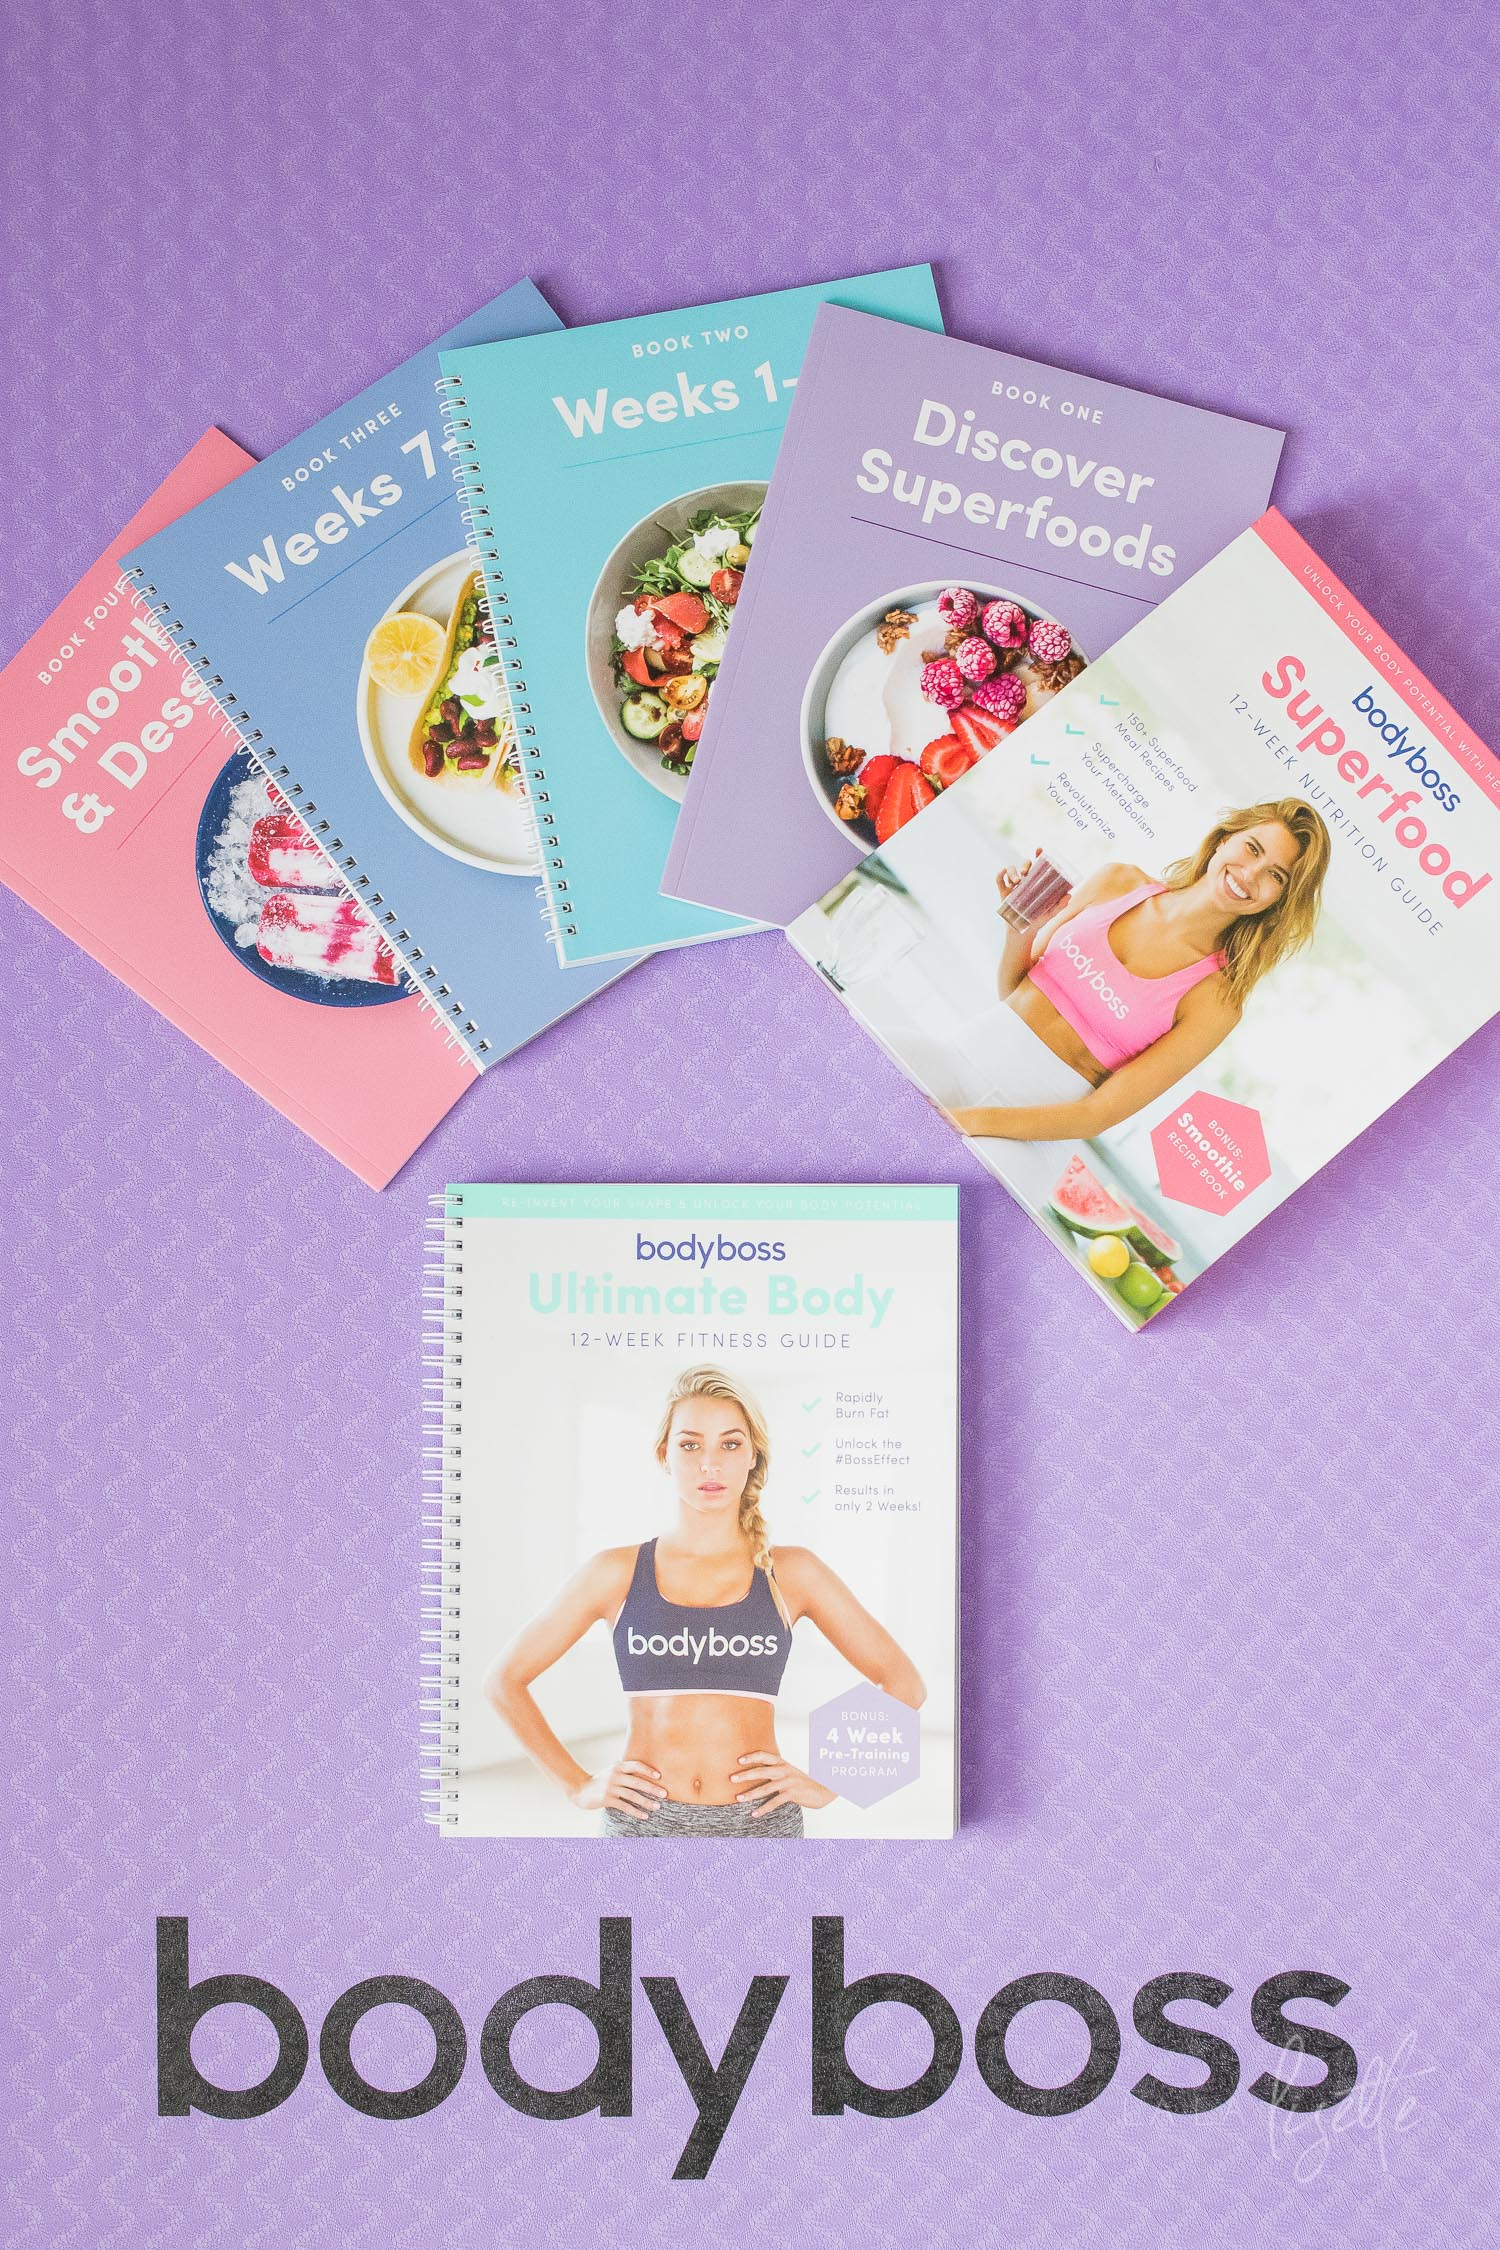 BodyBoss Fitness Guide and Nutrition Guide